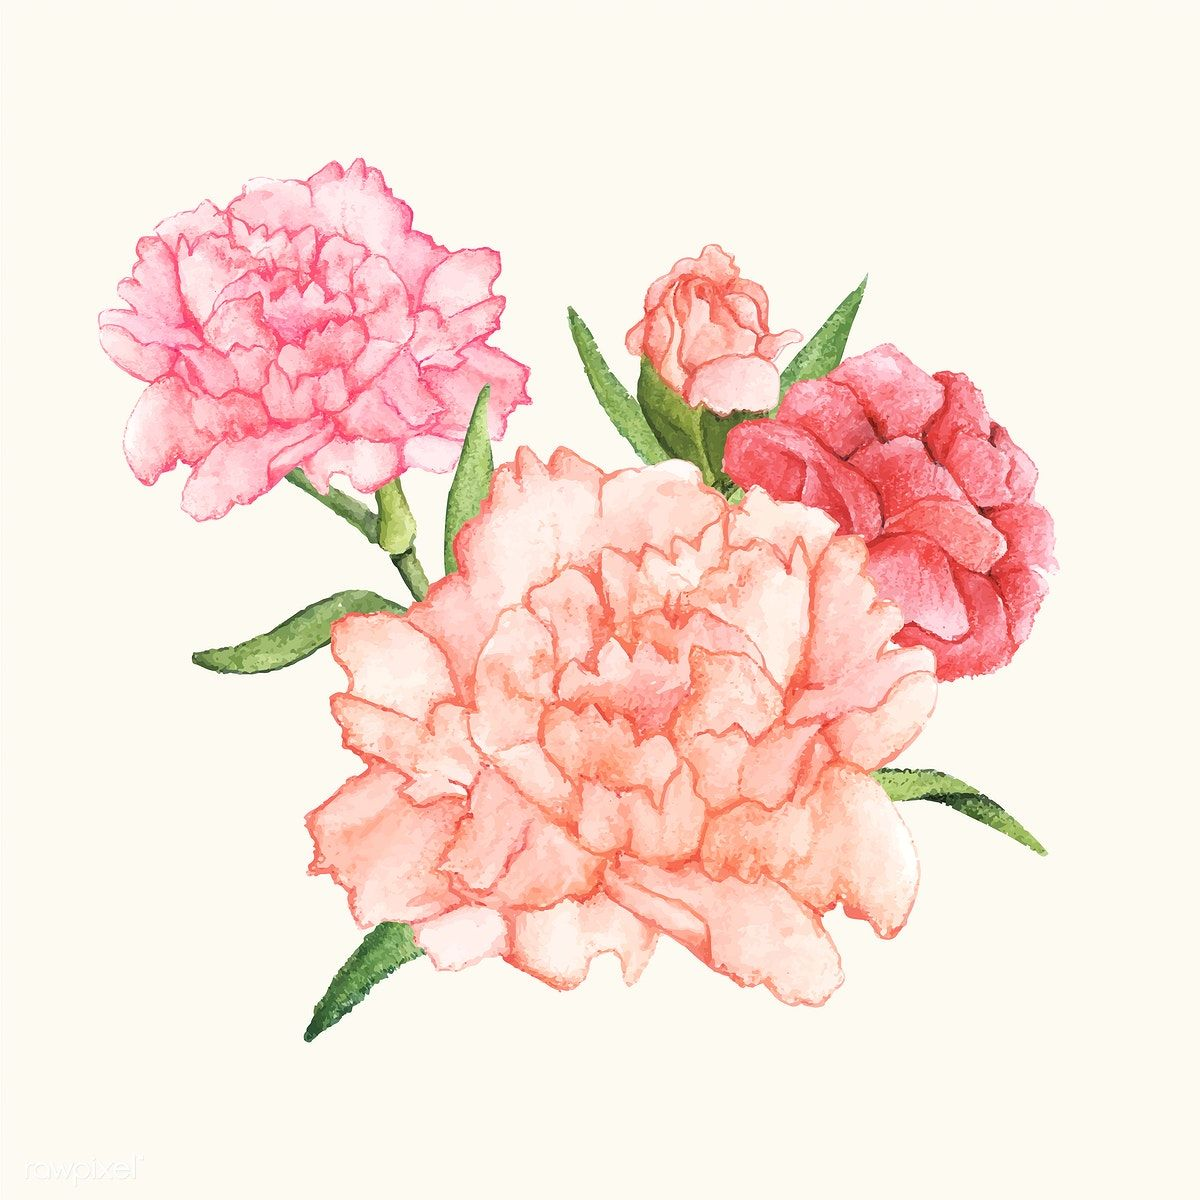 Hand Drawn Carnation Flower Isolated Free Image By Rawpixel Com